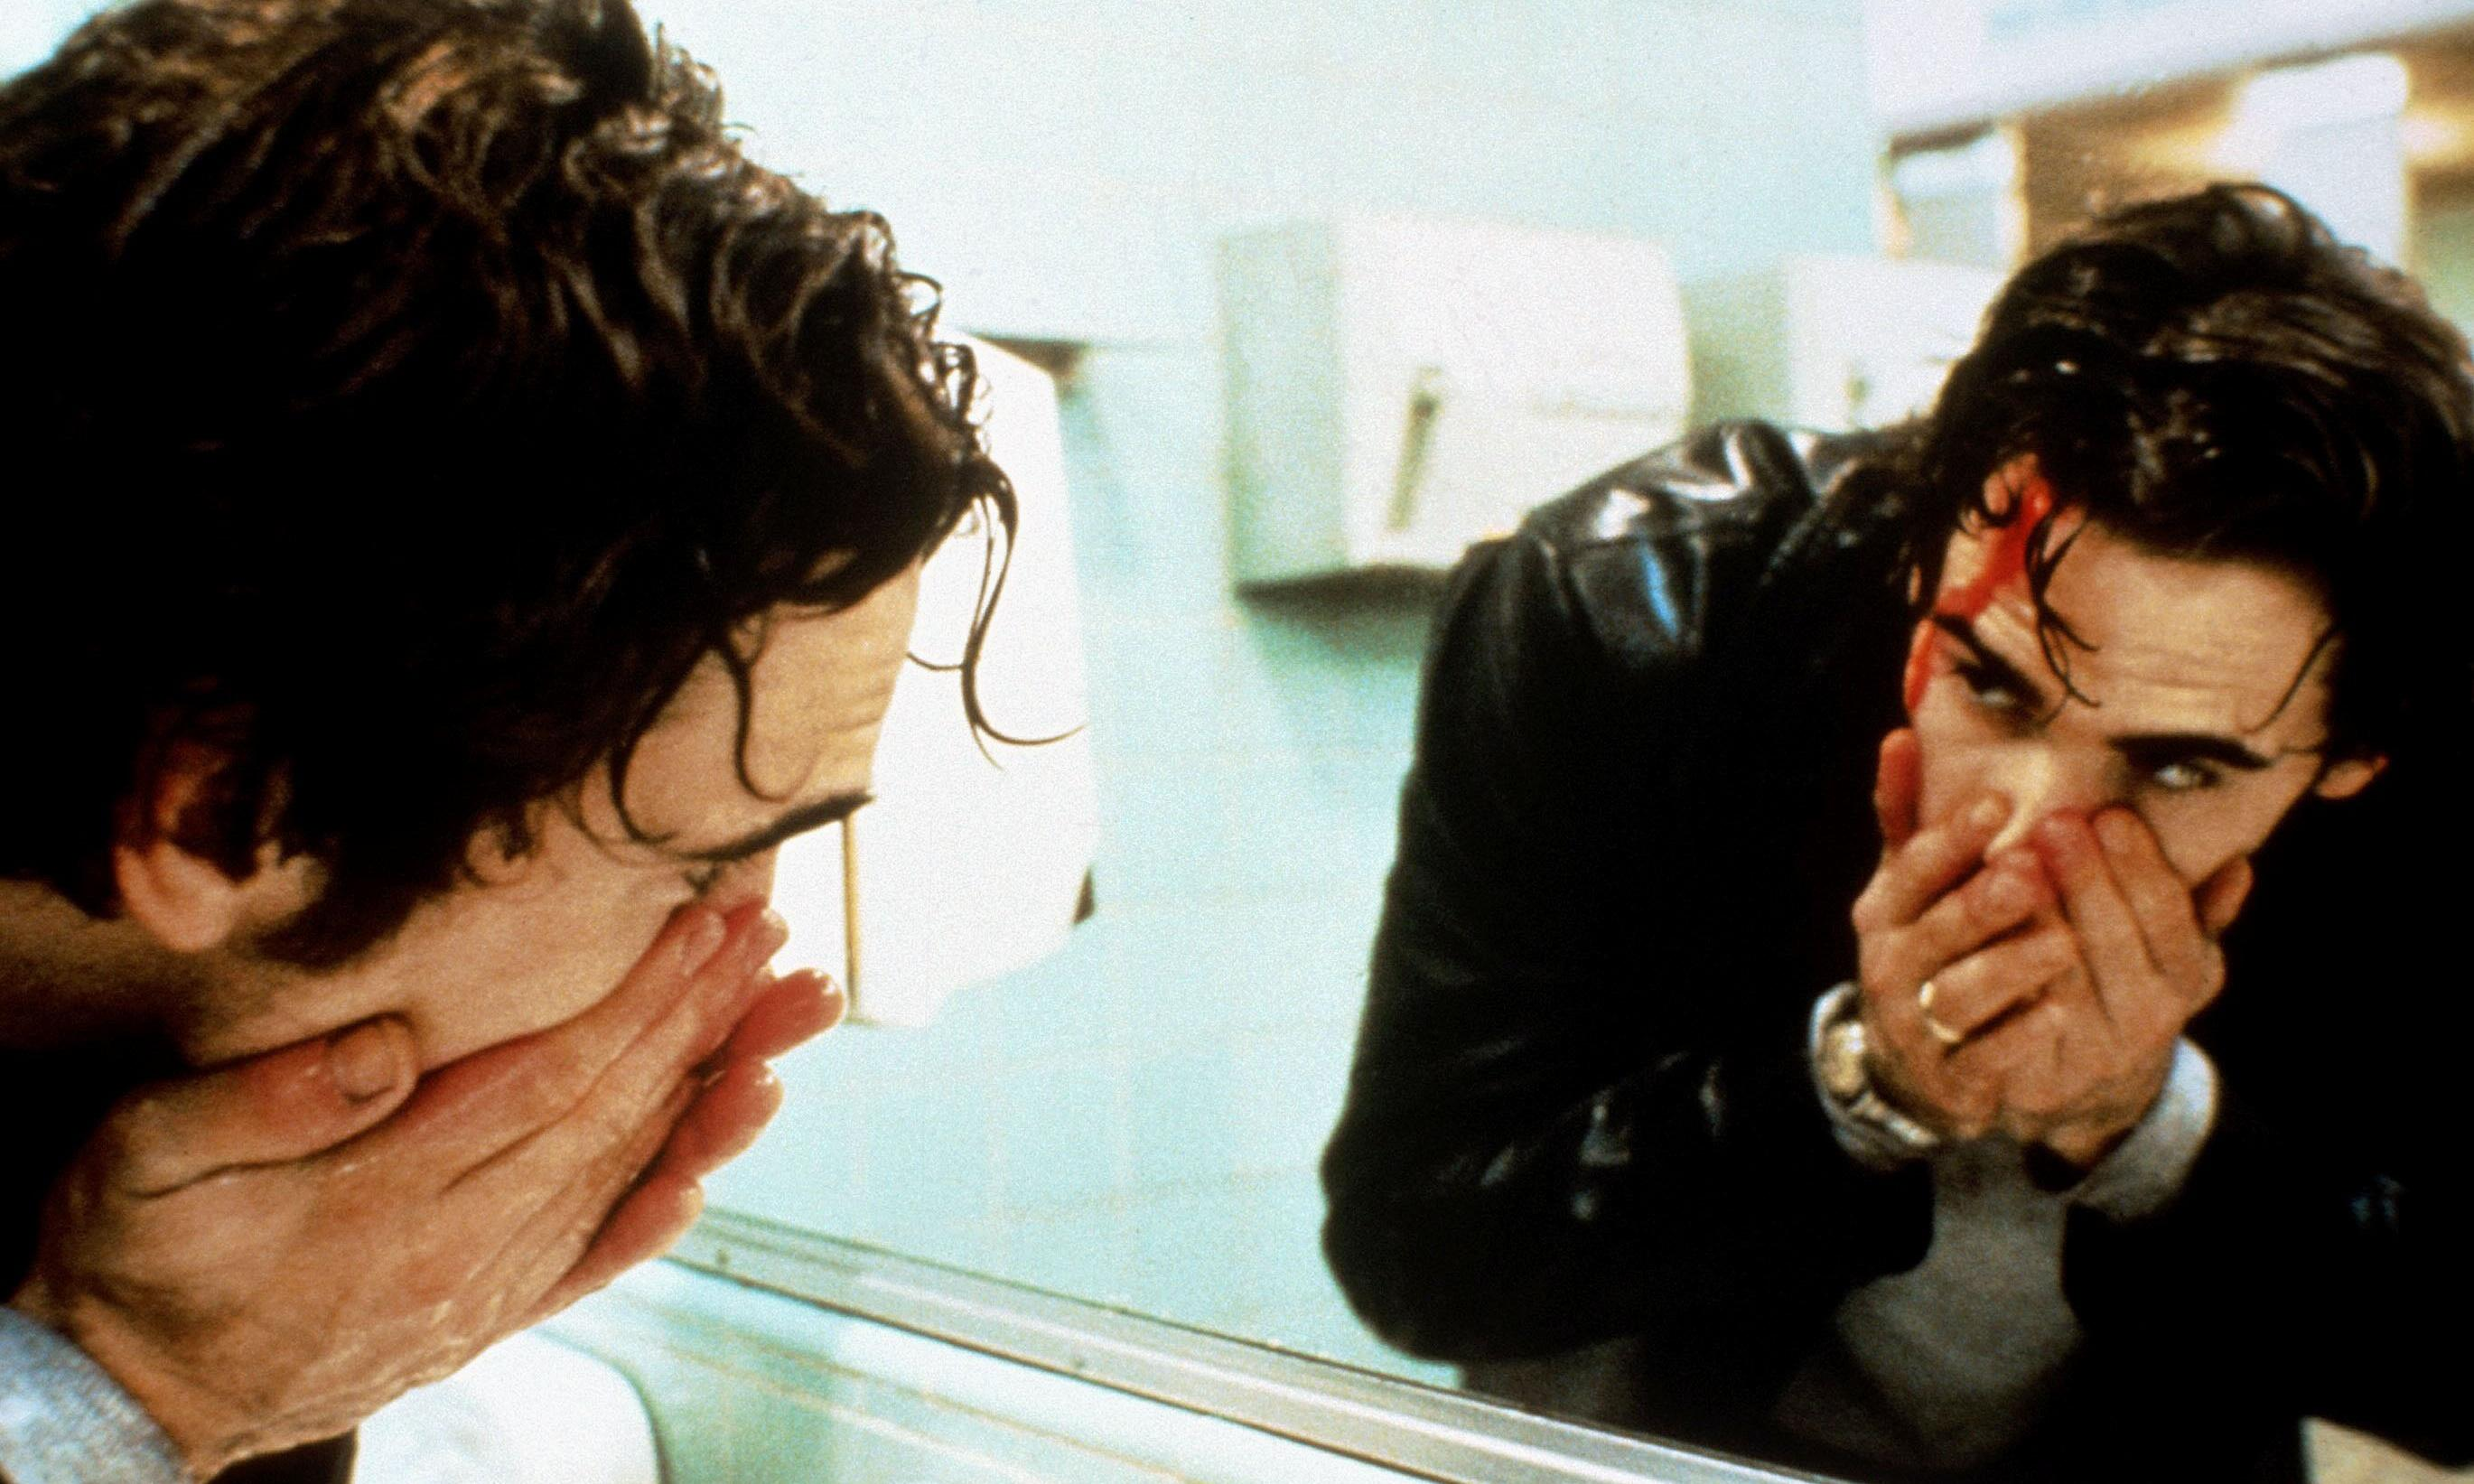 Drugstore Cowboy at 30: is this the best film ever made about addiction?